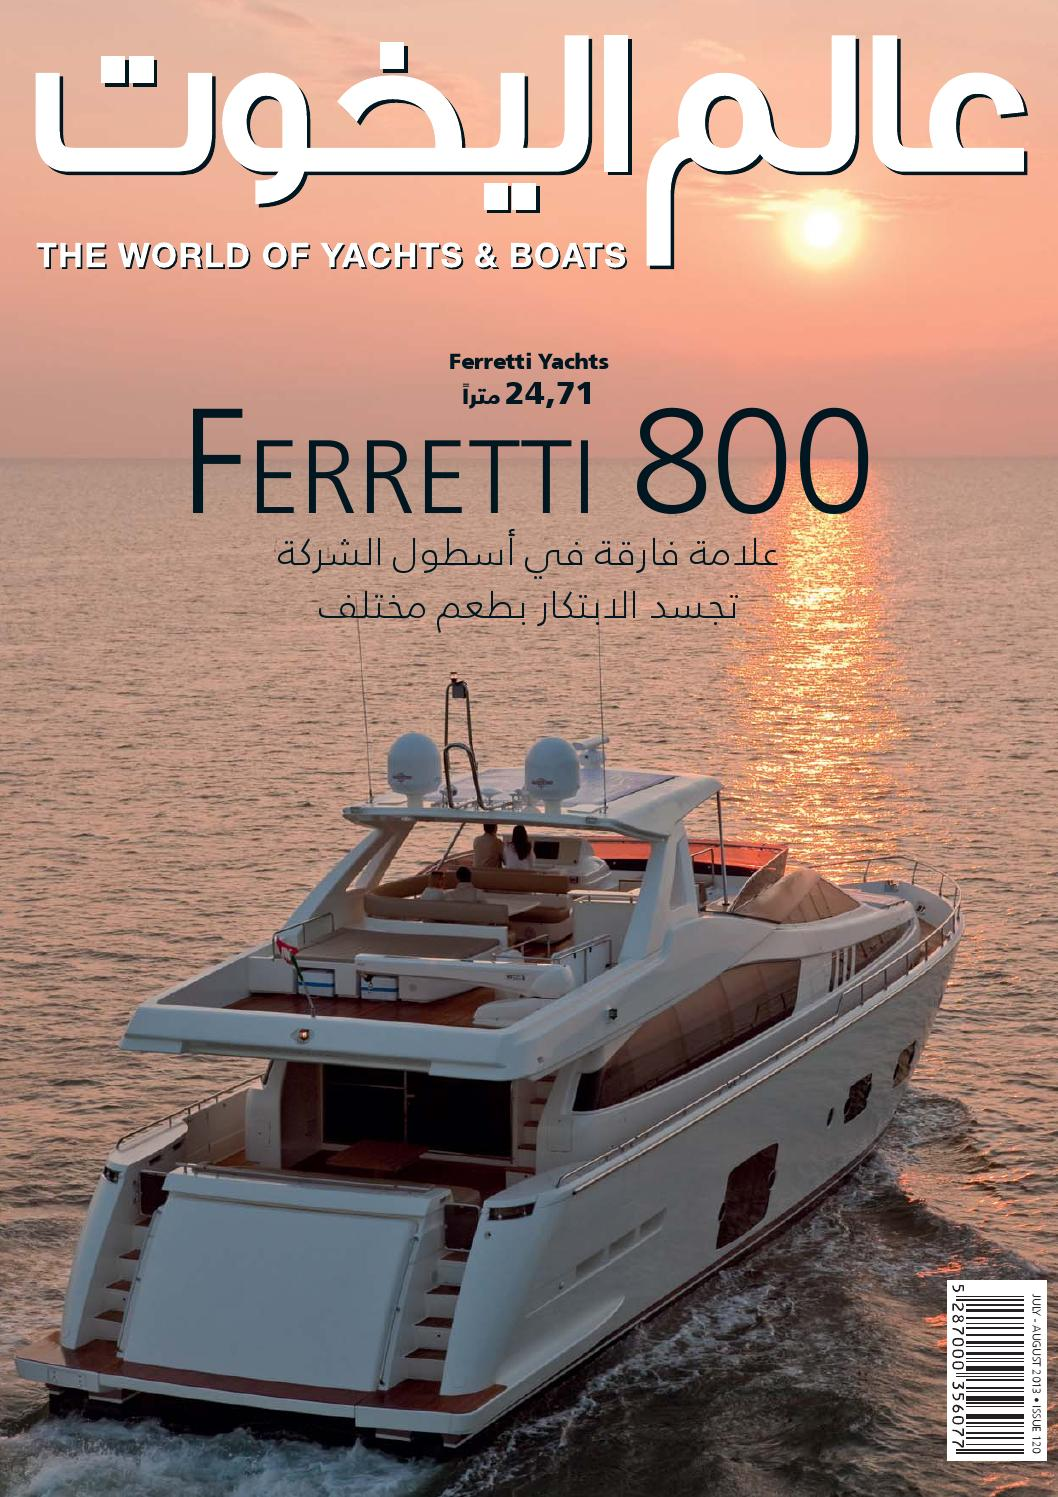 cbf378728 The World of Yachts & Boats by The World of Yachts & Boats - issuu